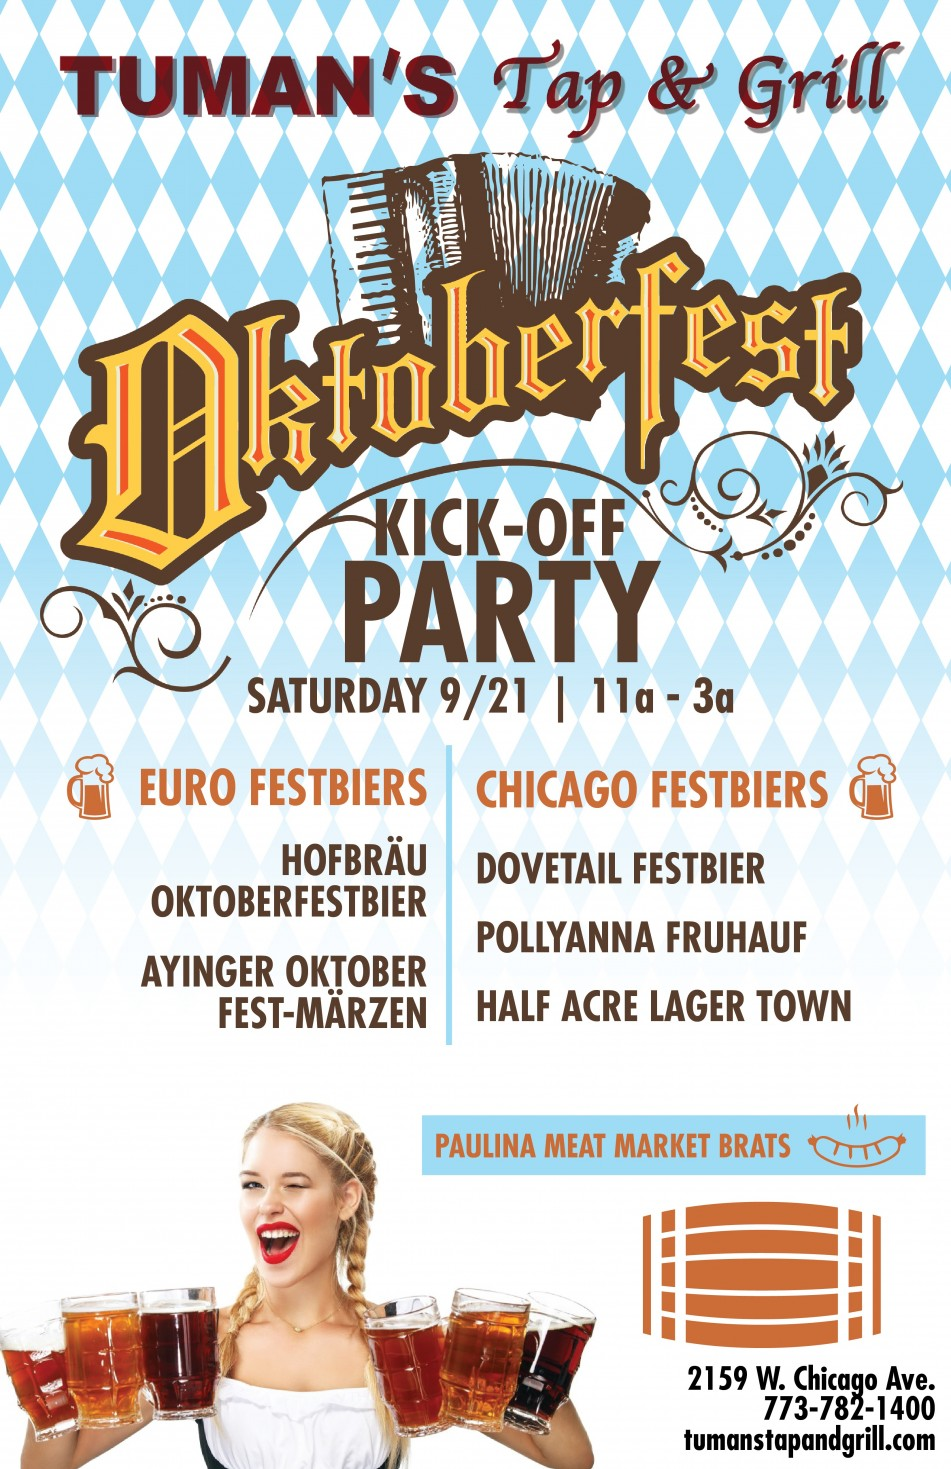 Oktoberfest Kick-Off Party at Tuman's Tap & Grill